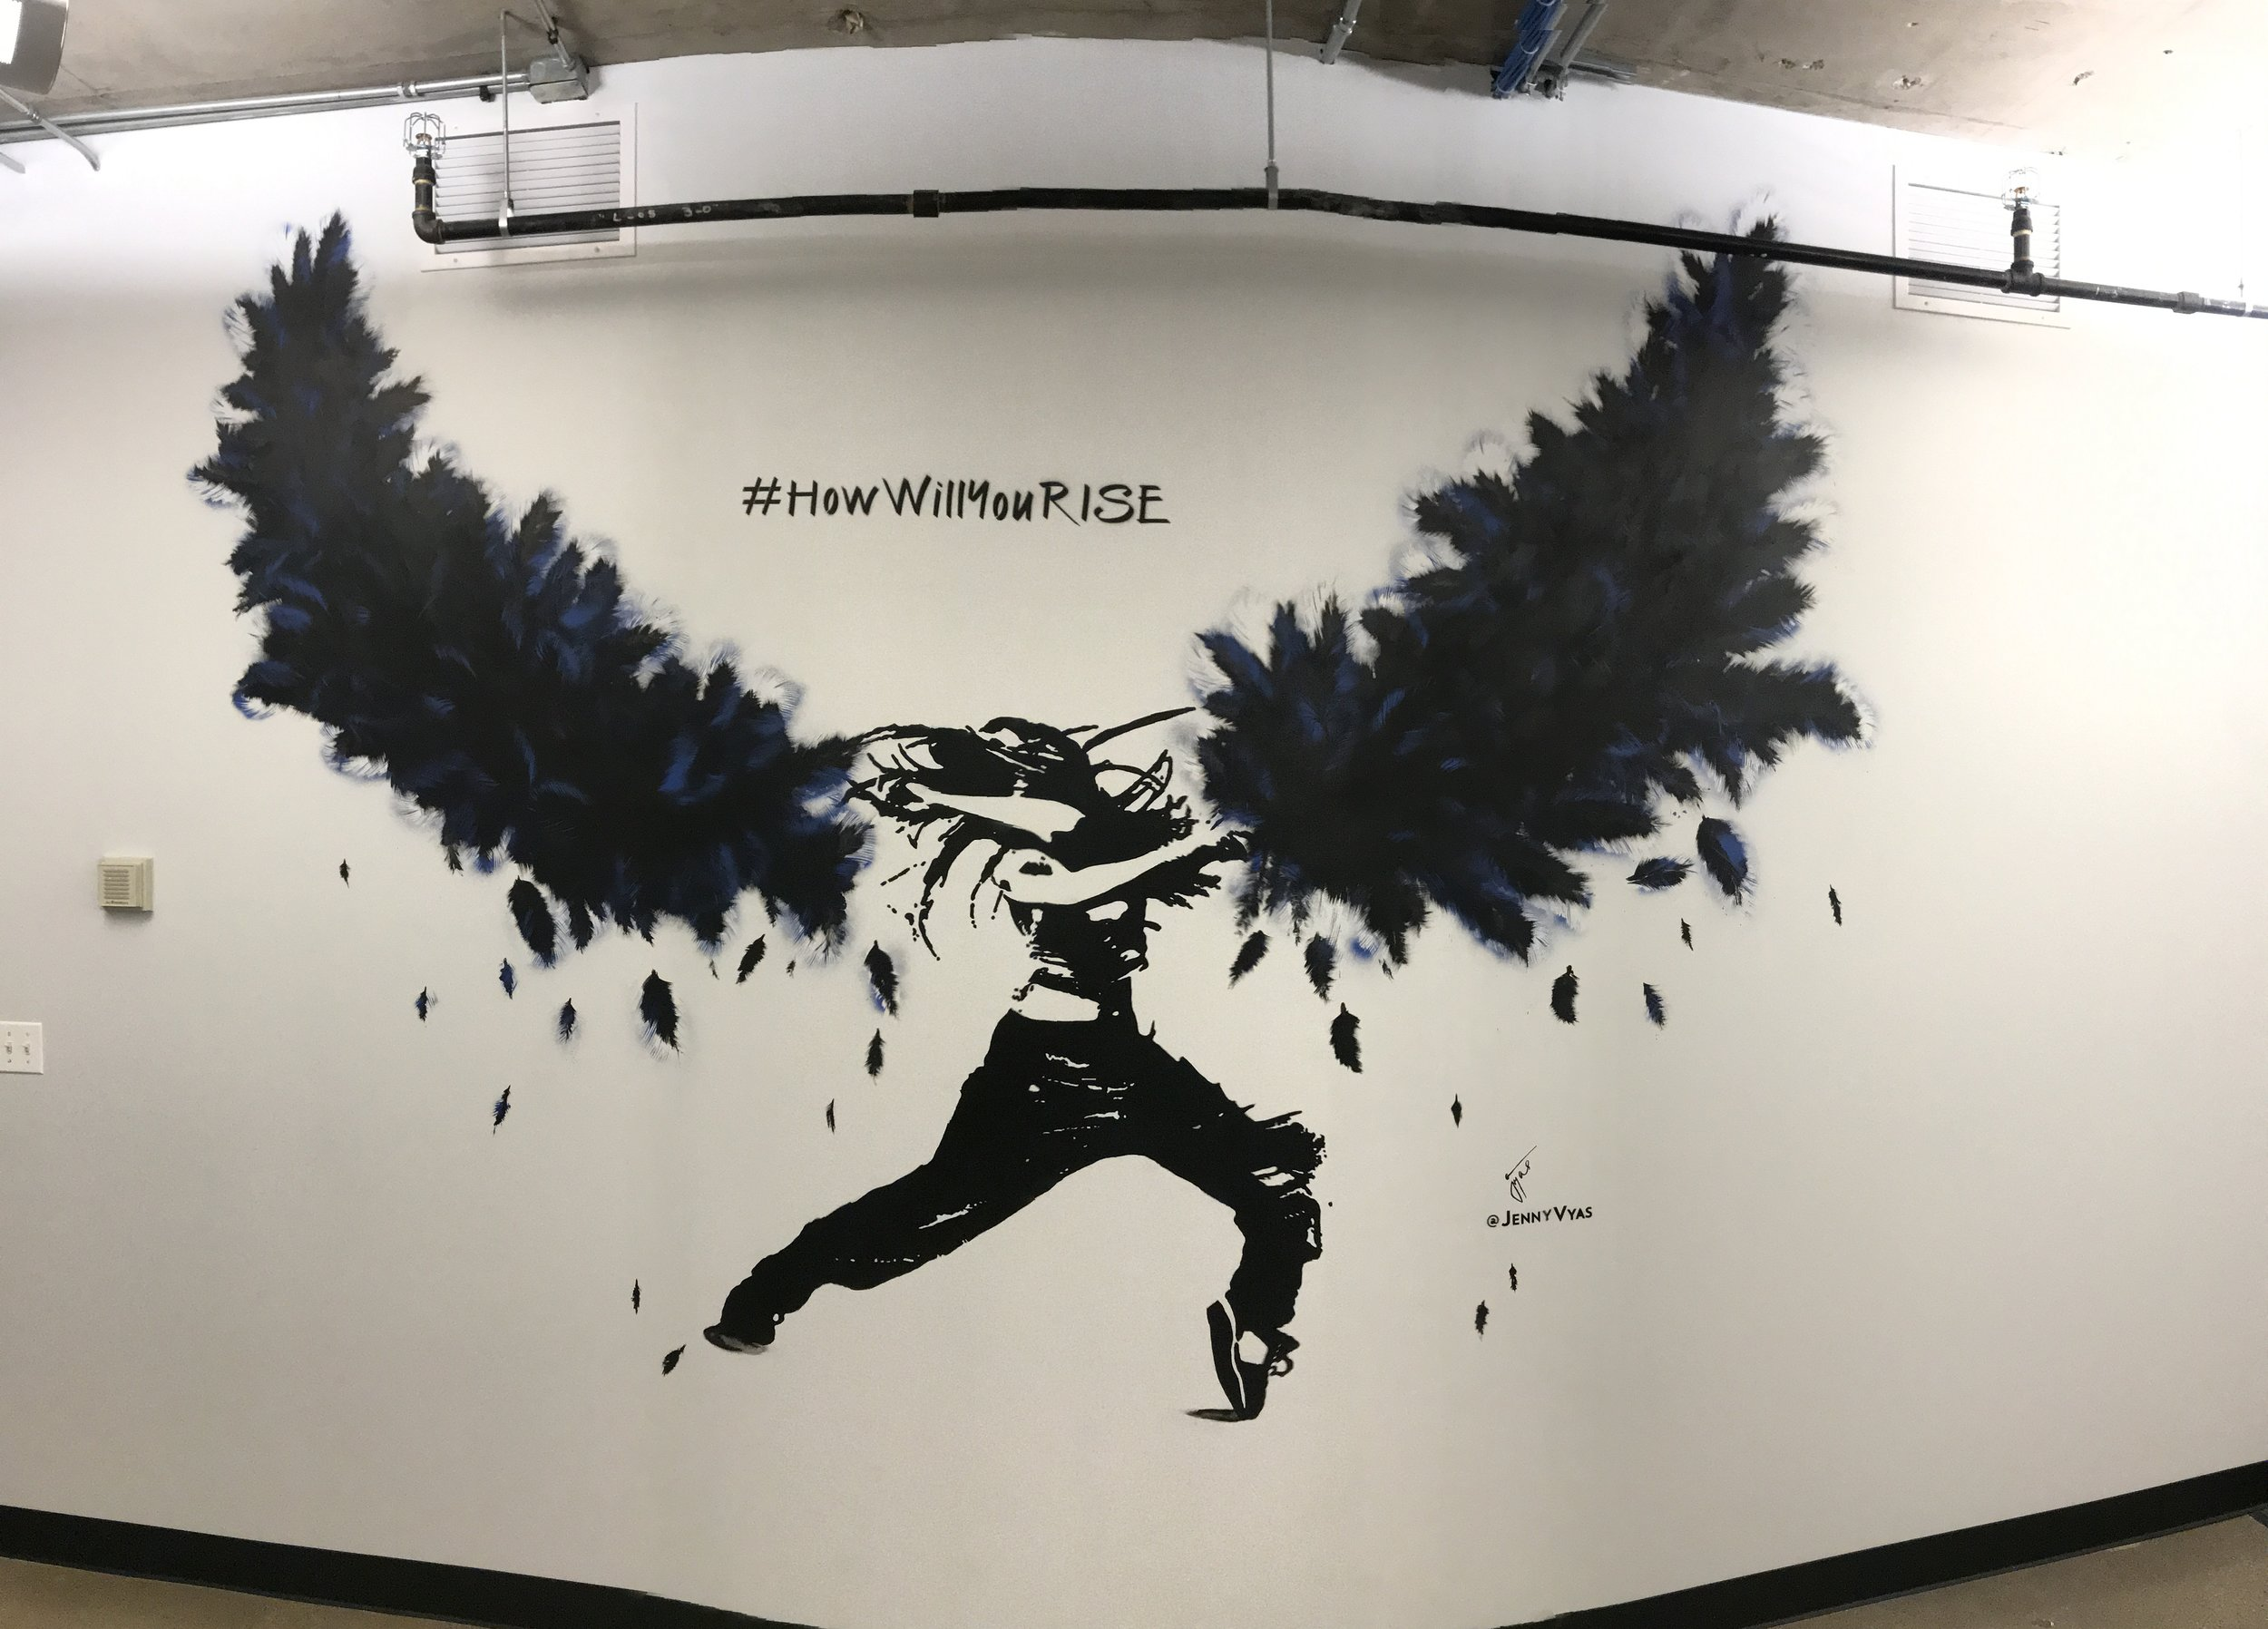 COMMERCIAL OFFICE MURAL